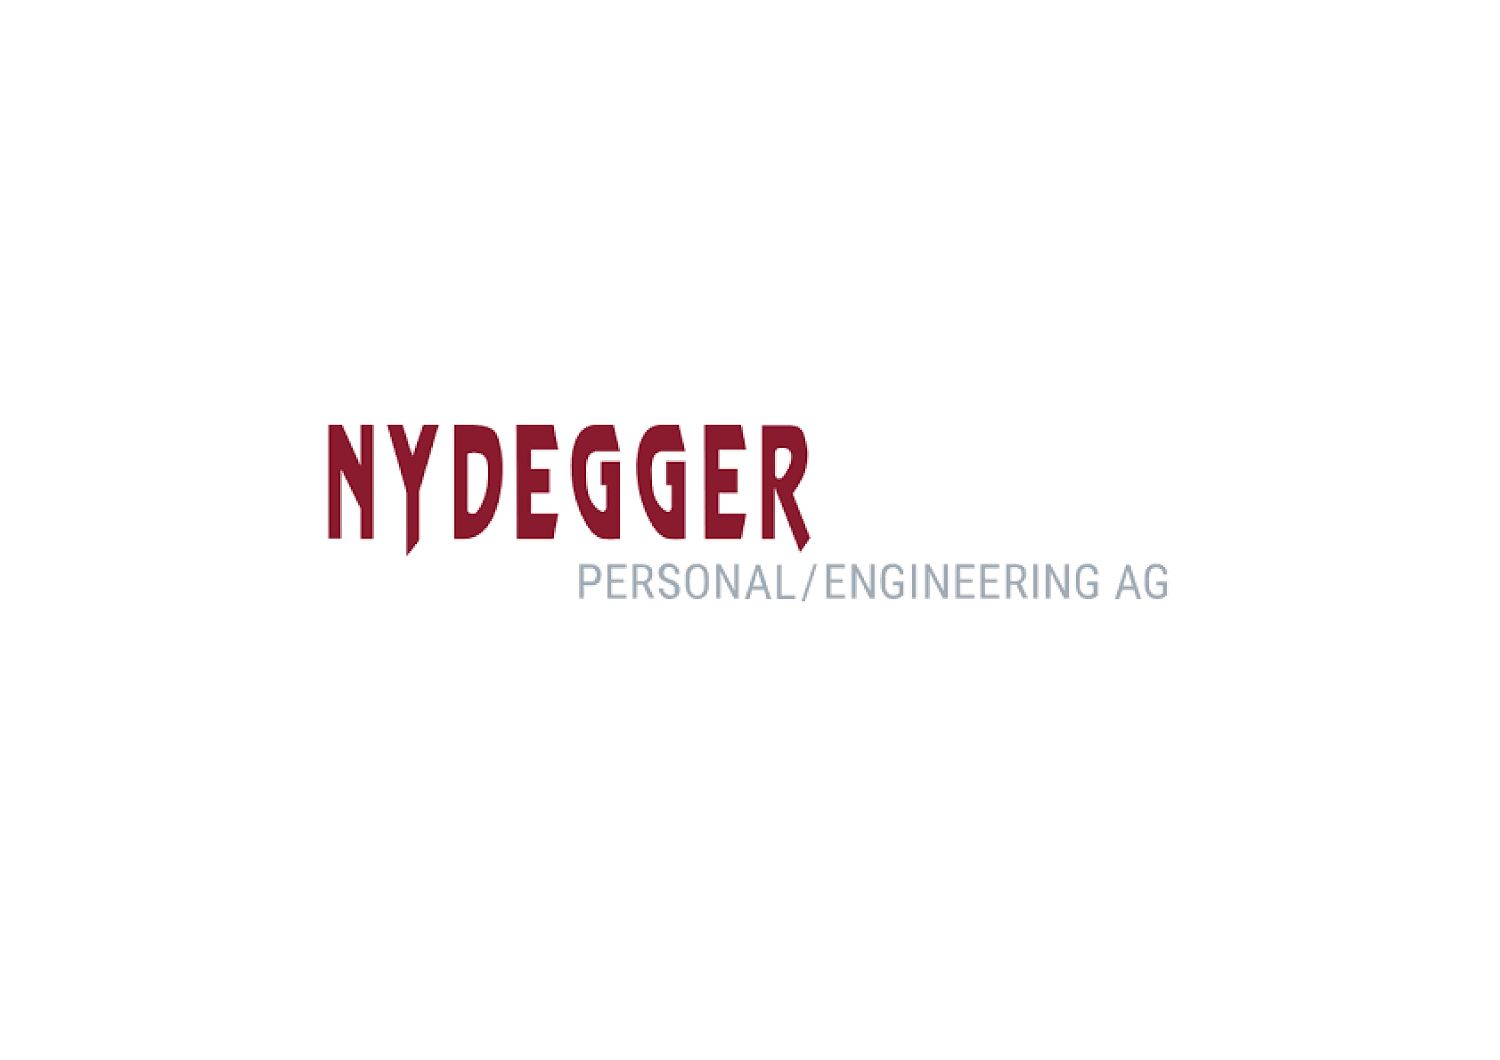 NYDEGGER Personal / Engineering AG